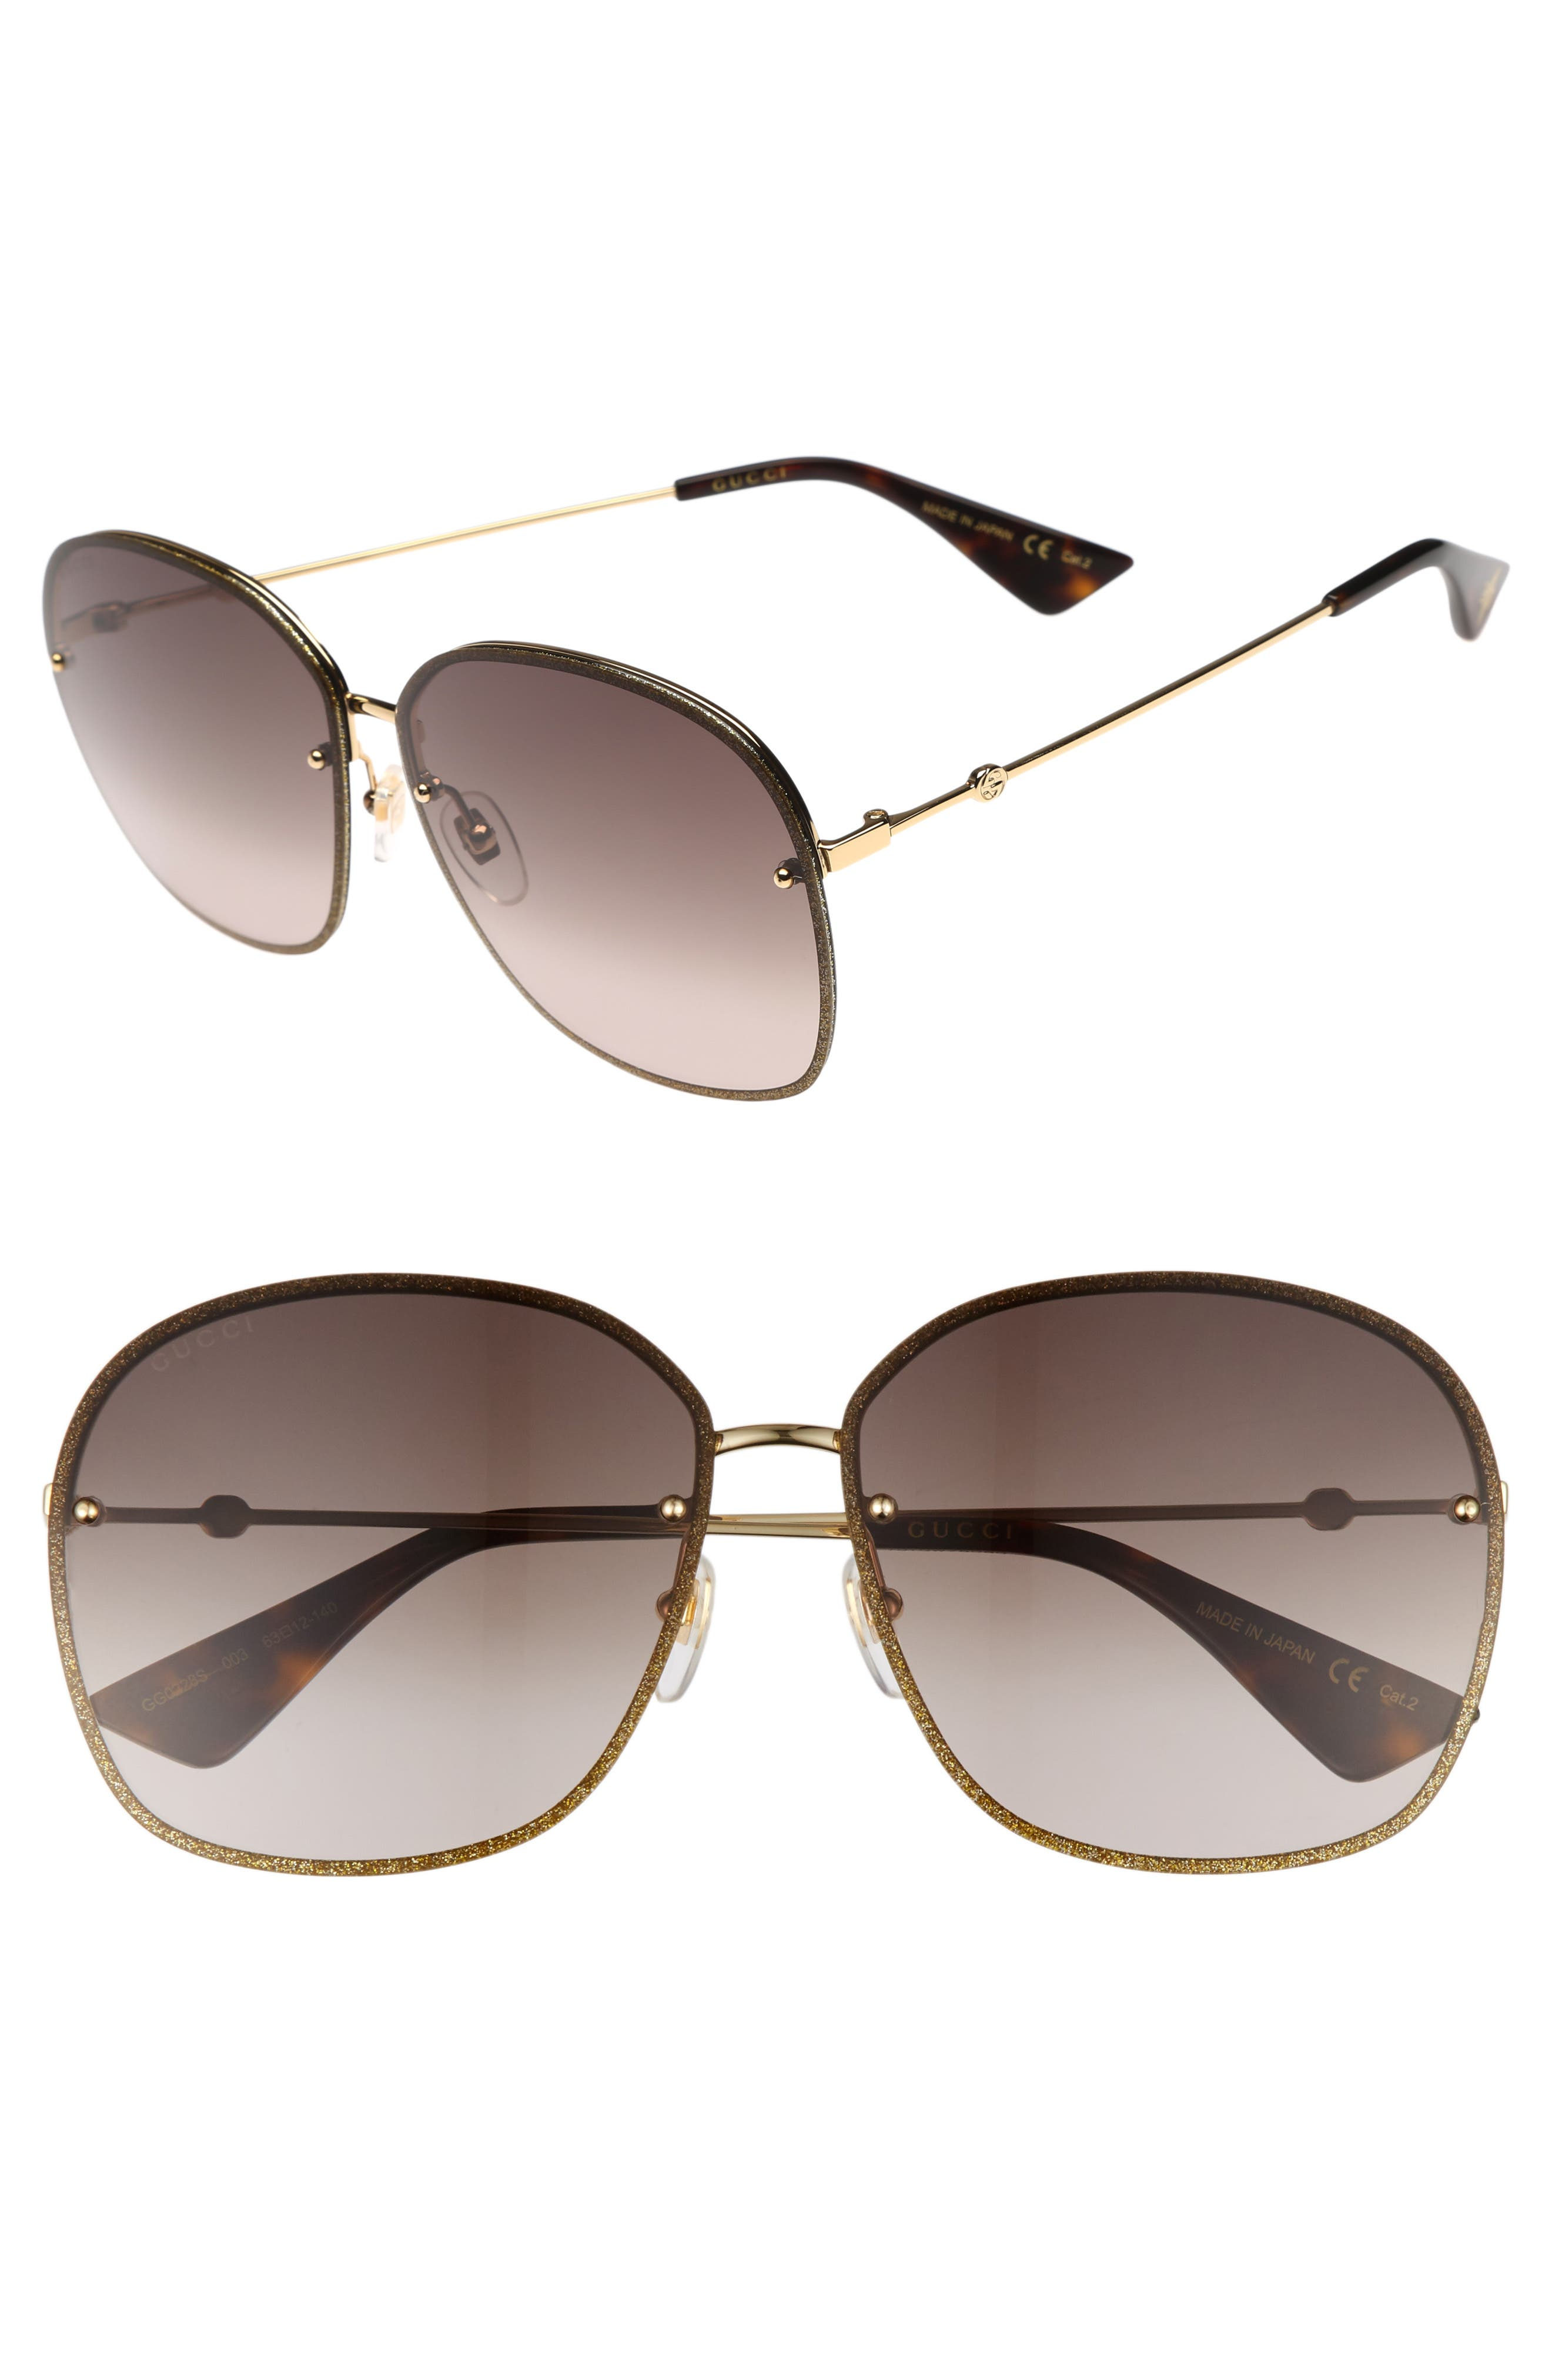 63mm Oversize Square Sunglasses,                             Main thumbnail 1, color,                             GOLD/ BROWN